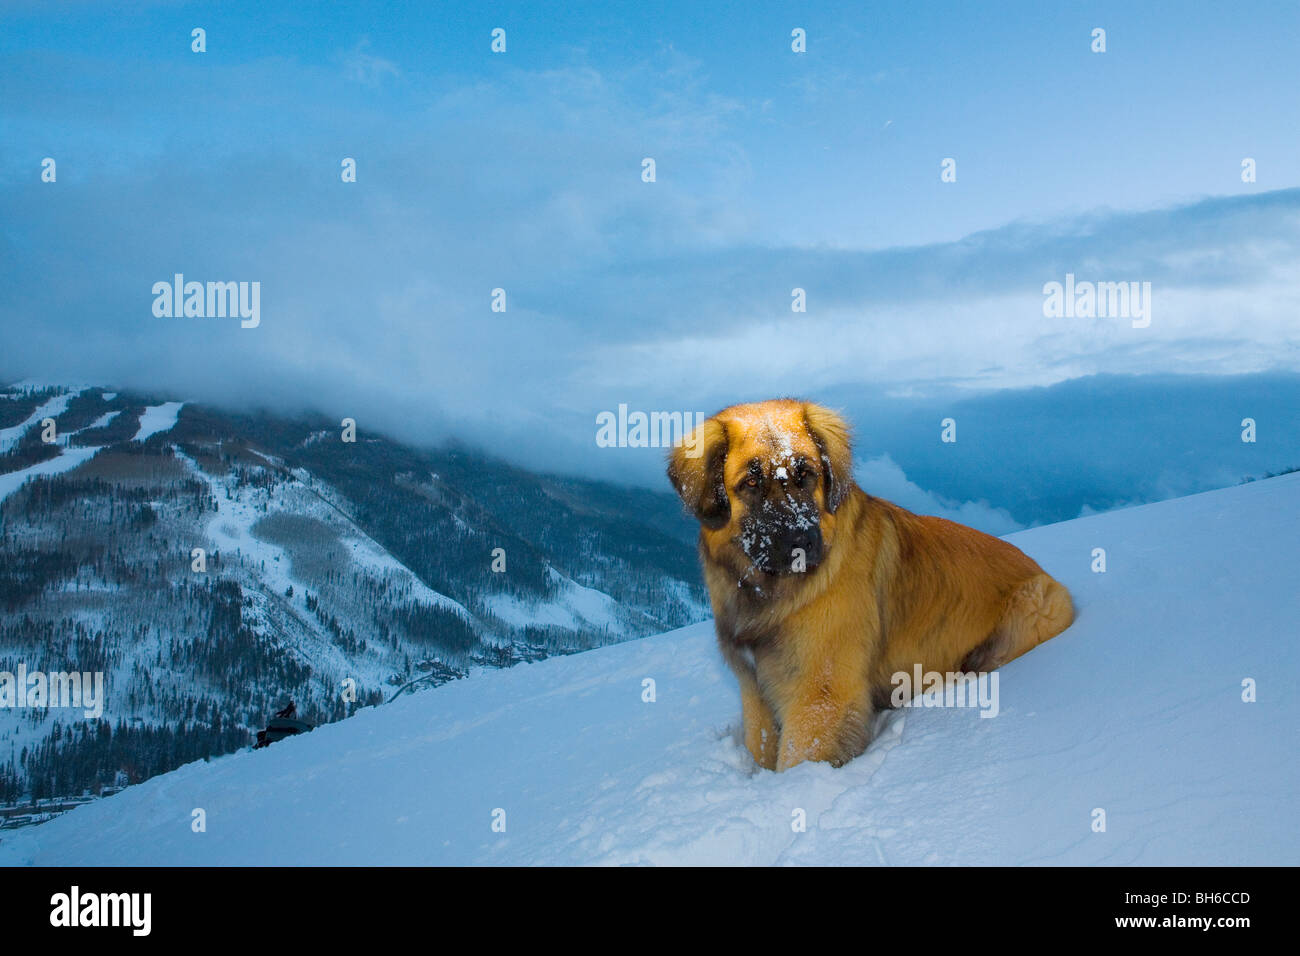 Leonberger sitting on a hill with the Vail Ski Resort behind. - Stock Image